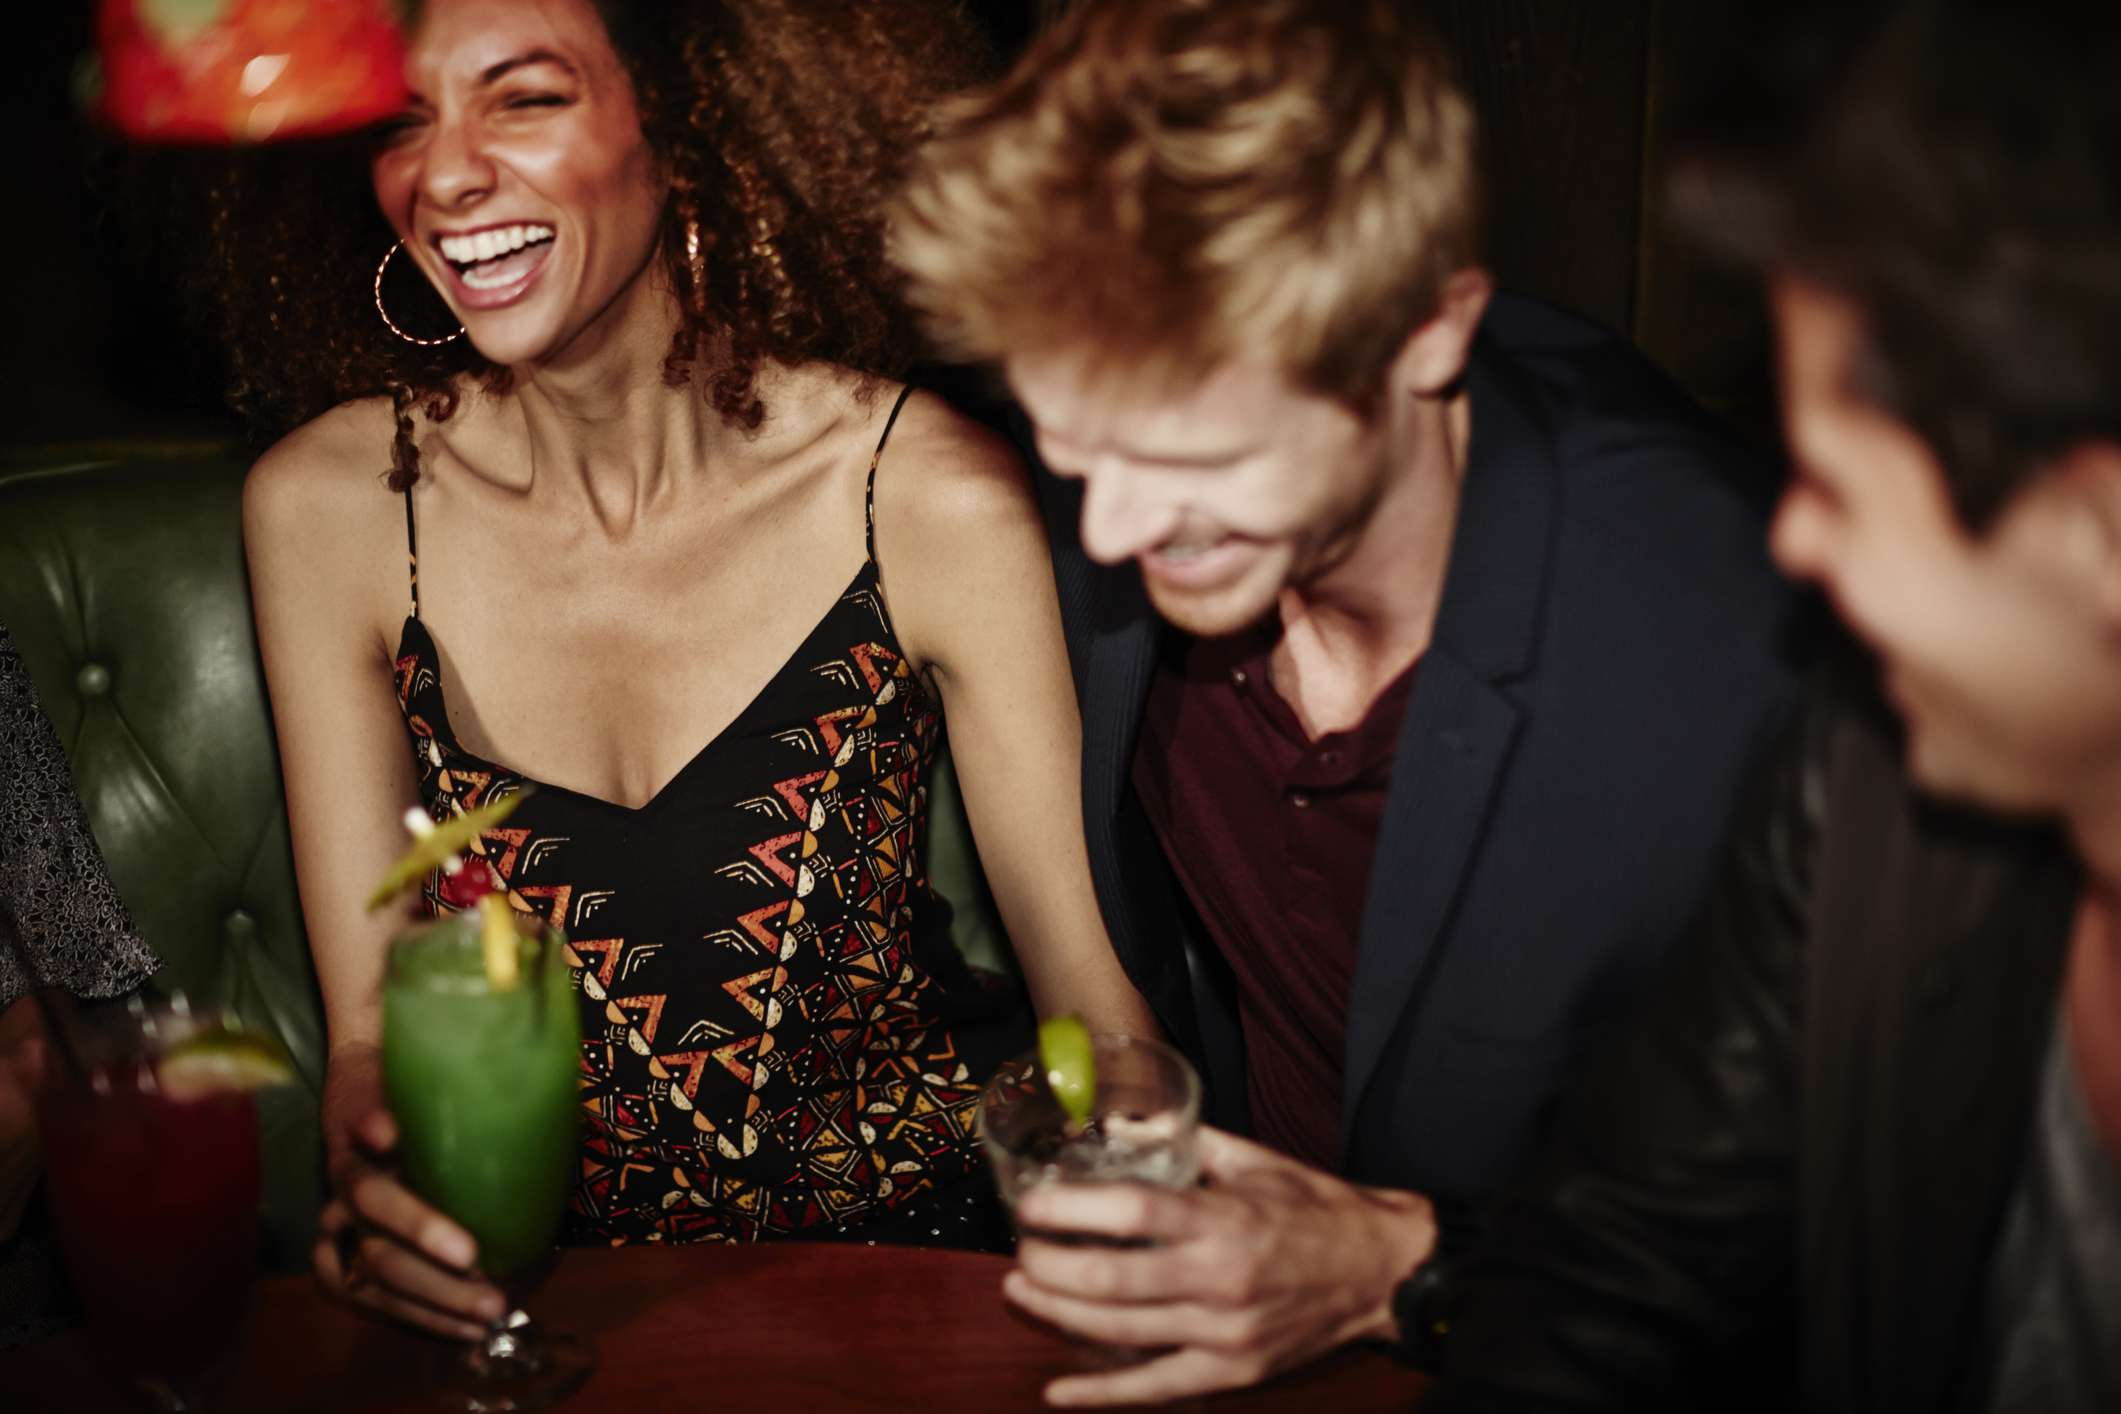 Young people laughing with cocktails in hand